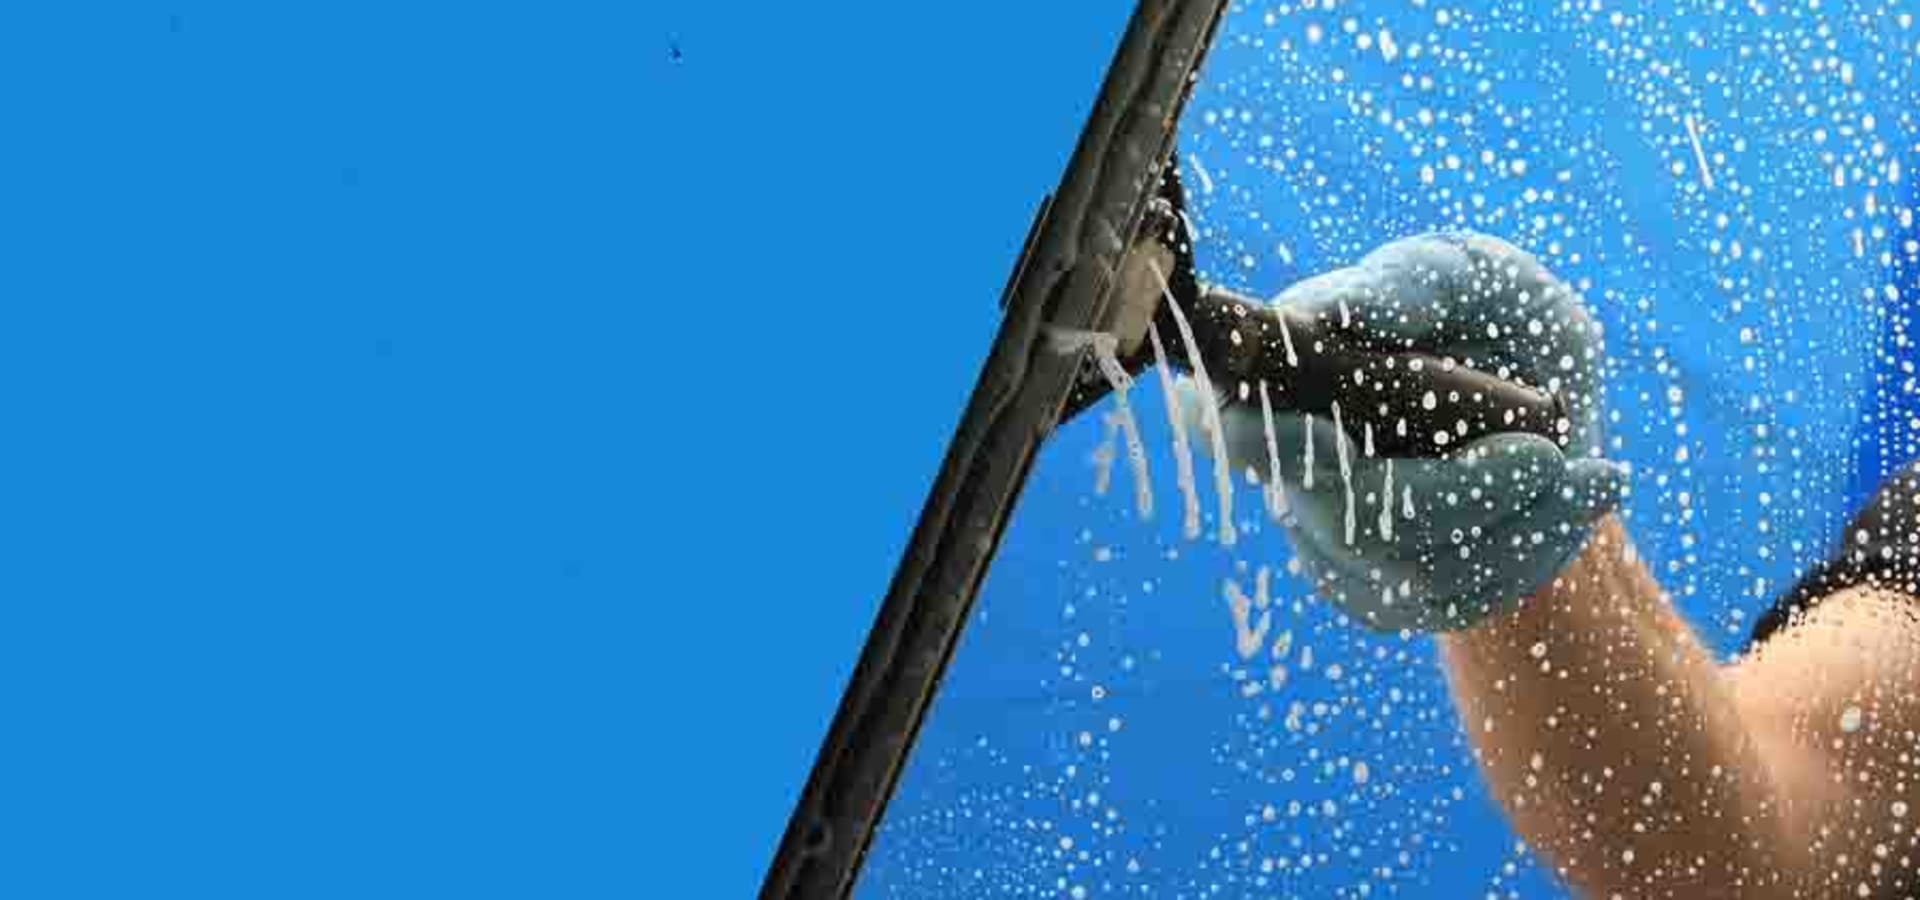 Window Cleaning Services Crewe